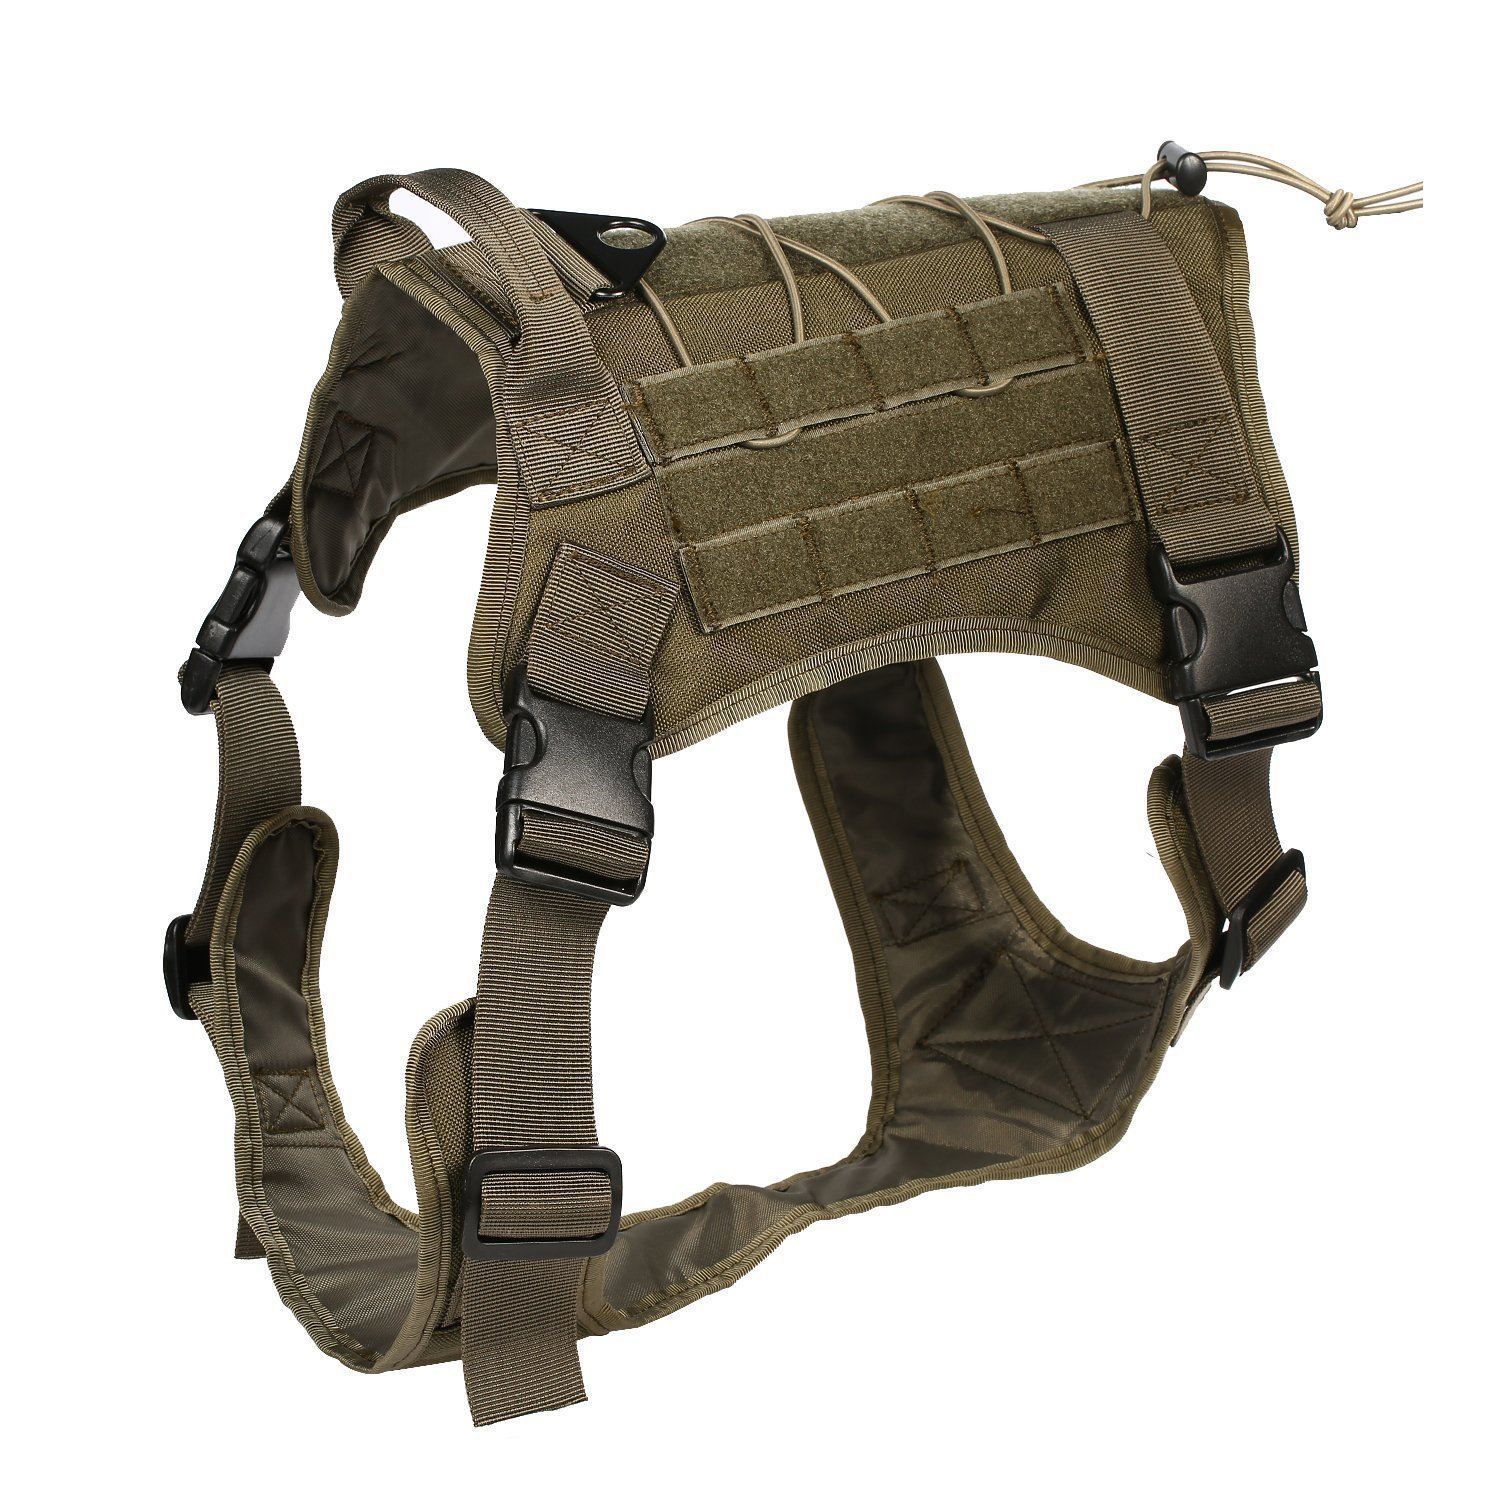 RG XL RG XL Feliscanis Tactical Dog Training Vest Harness Adjustable Service Dog Vest RG Szie XL